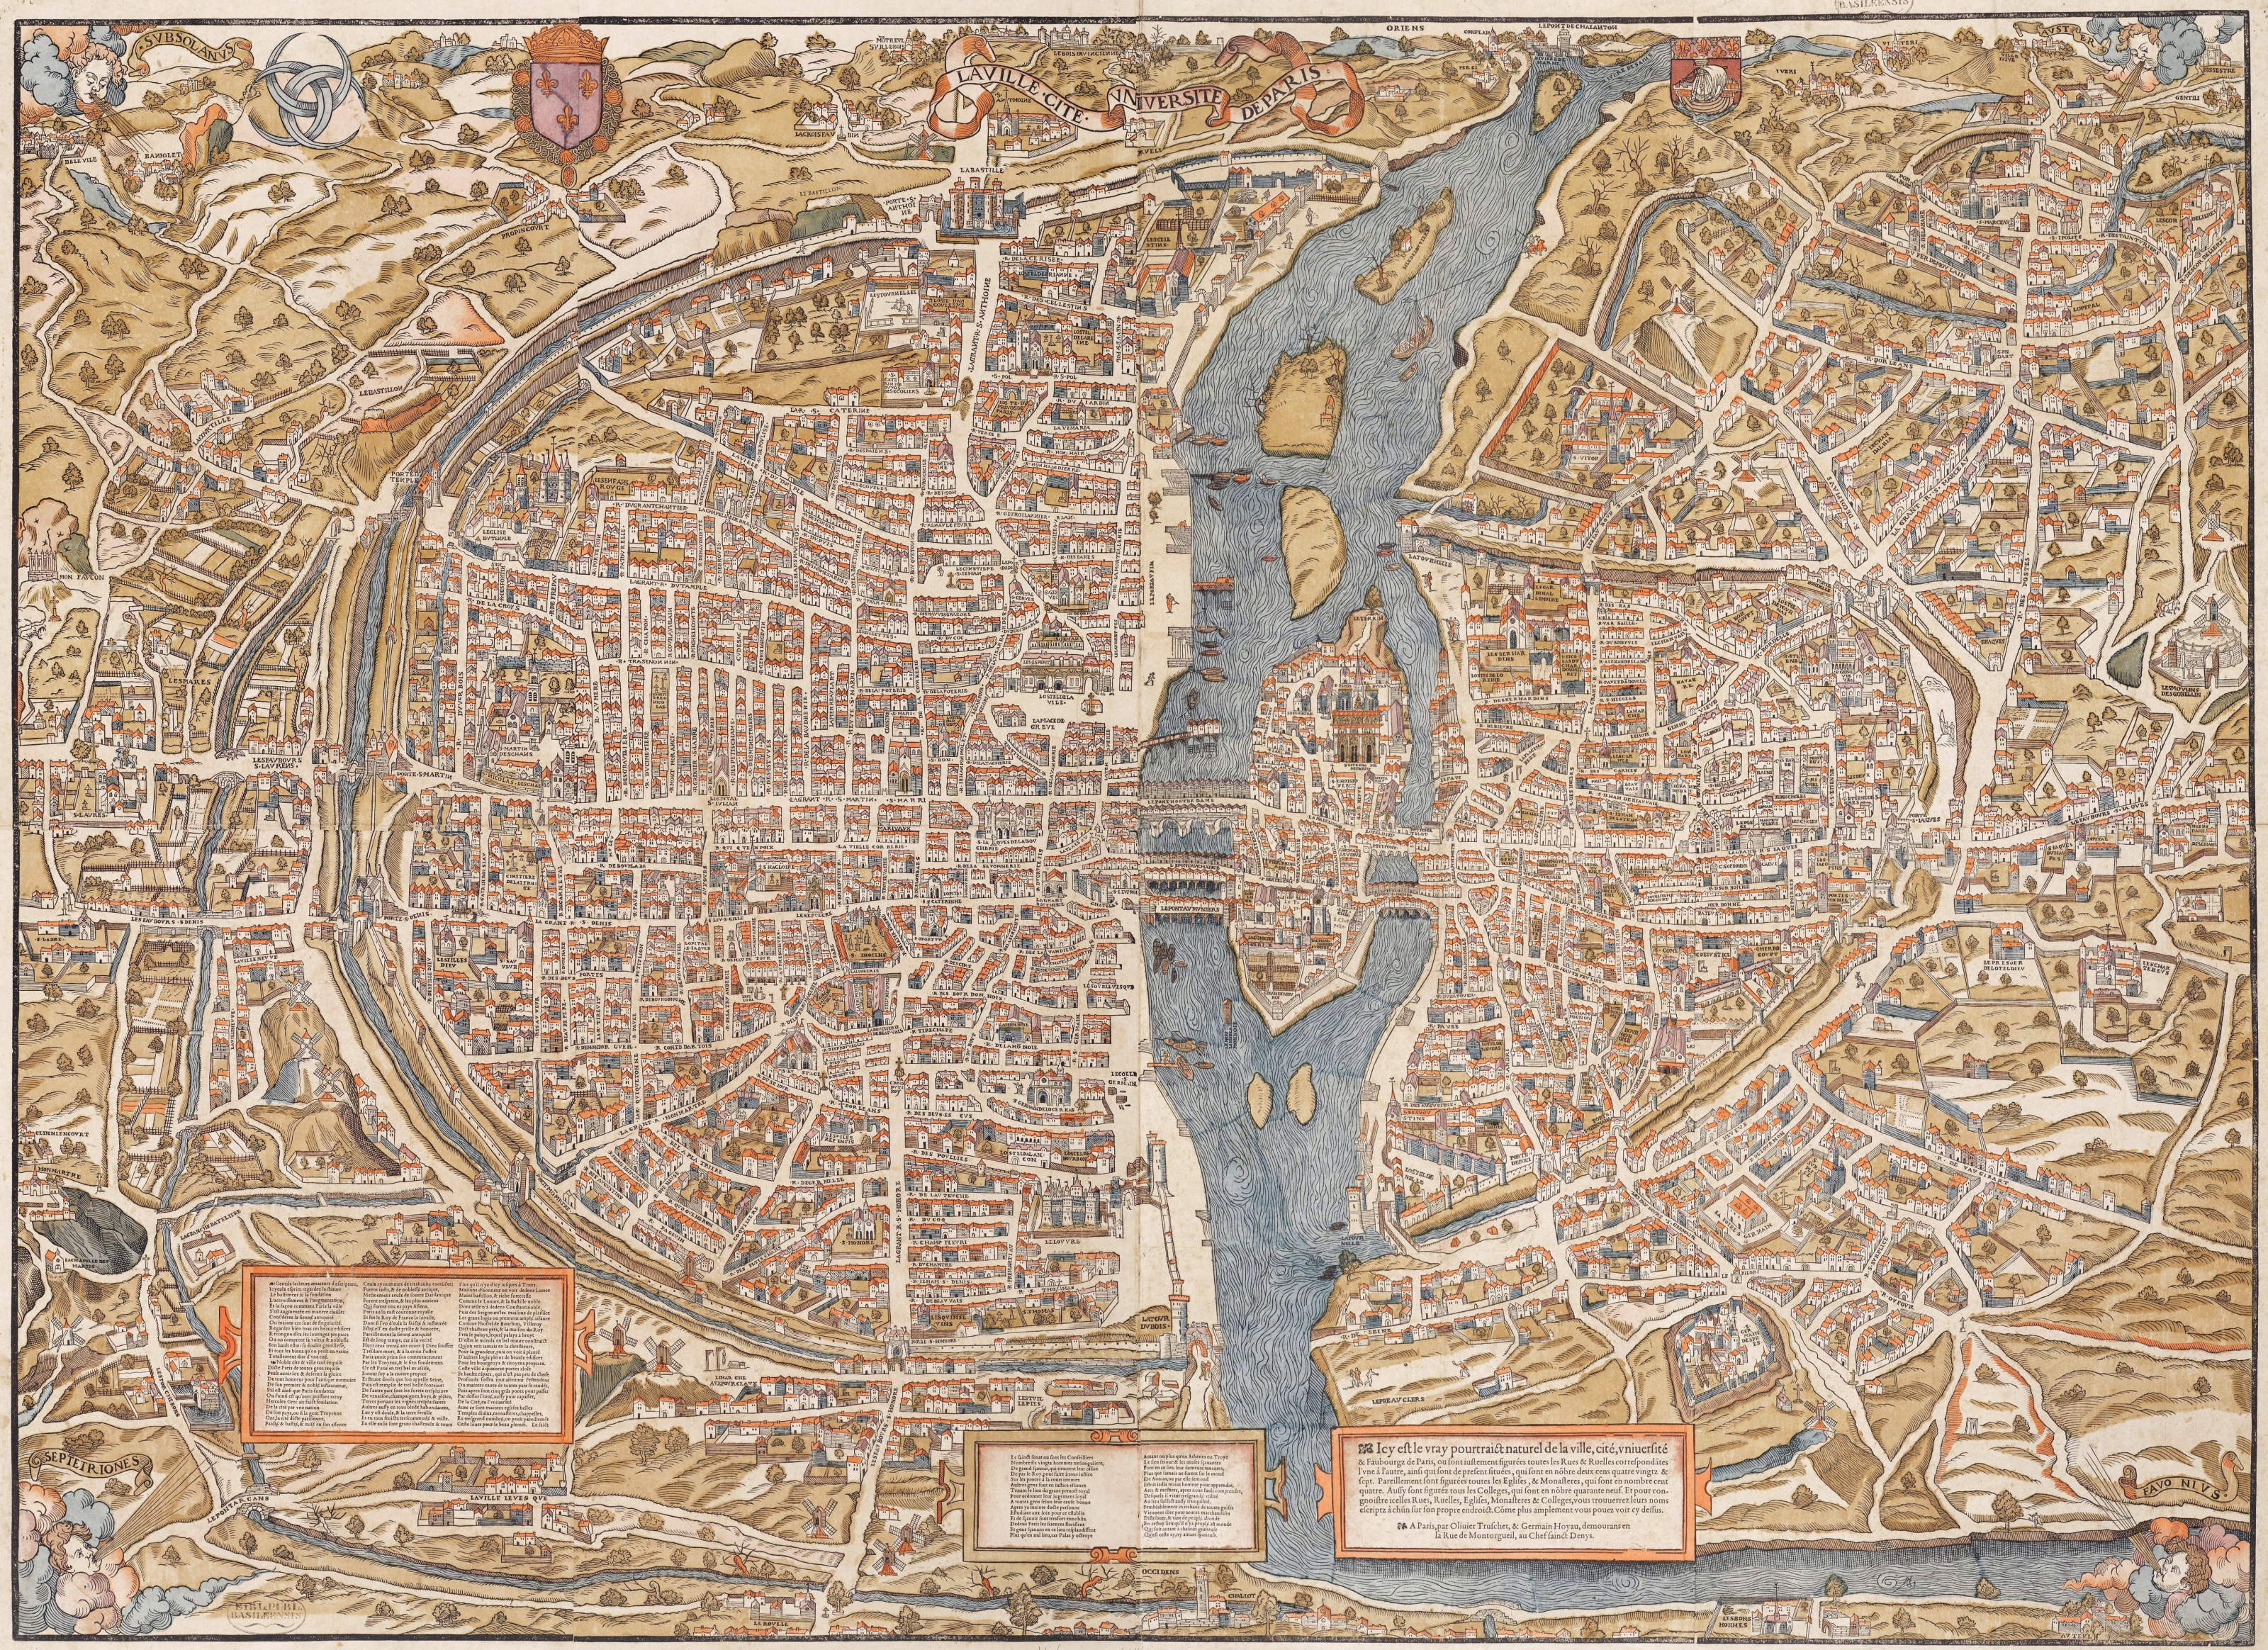 paris-1550-old-map